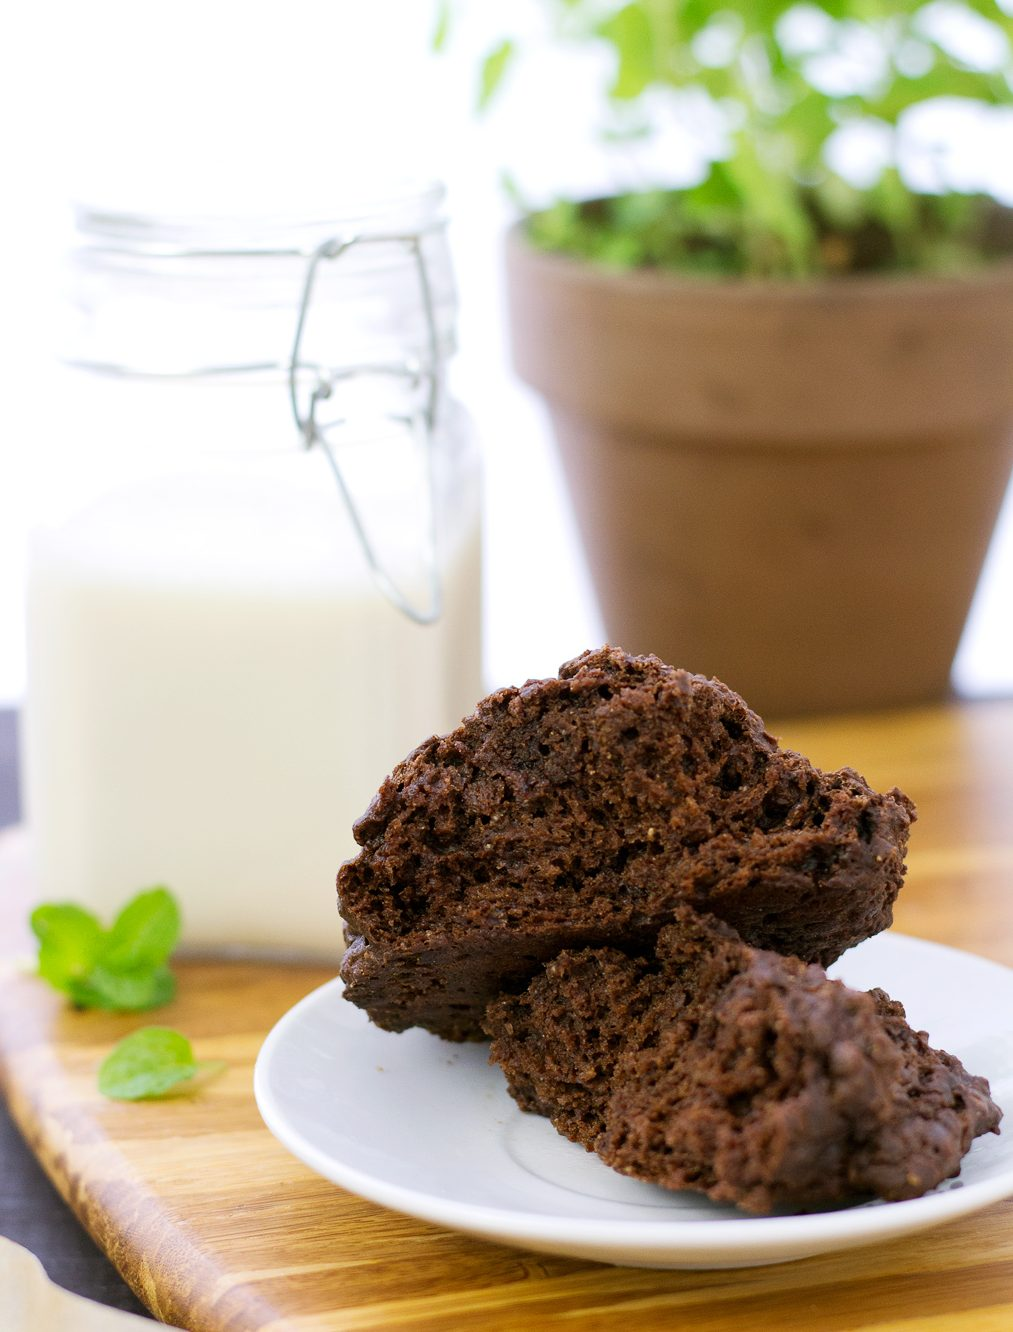 Easy vegan chocolate mint scone broken open to show a delicious and moist inside!